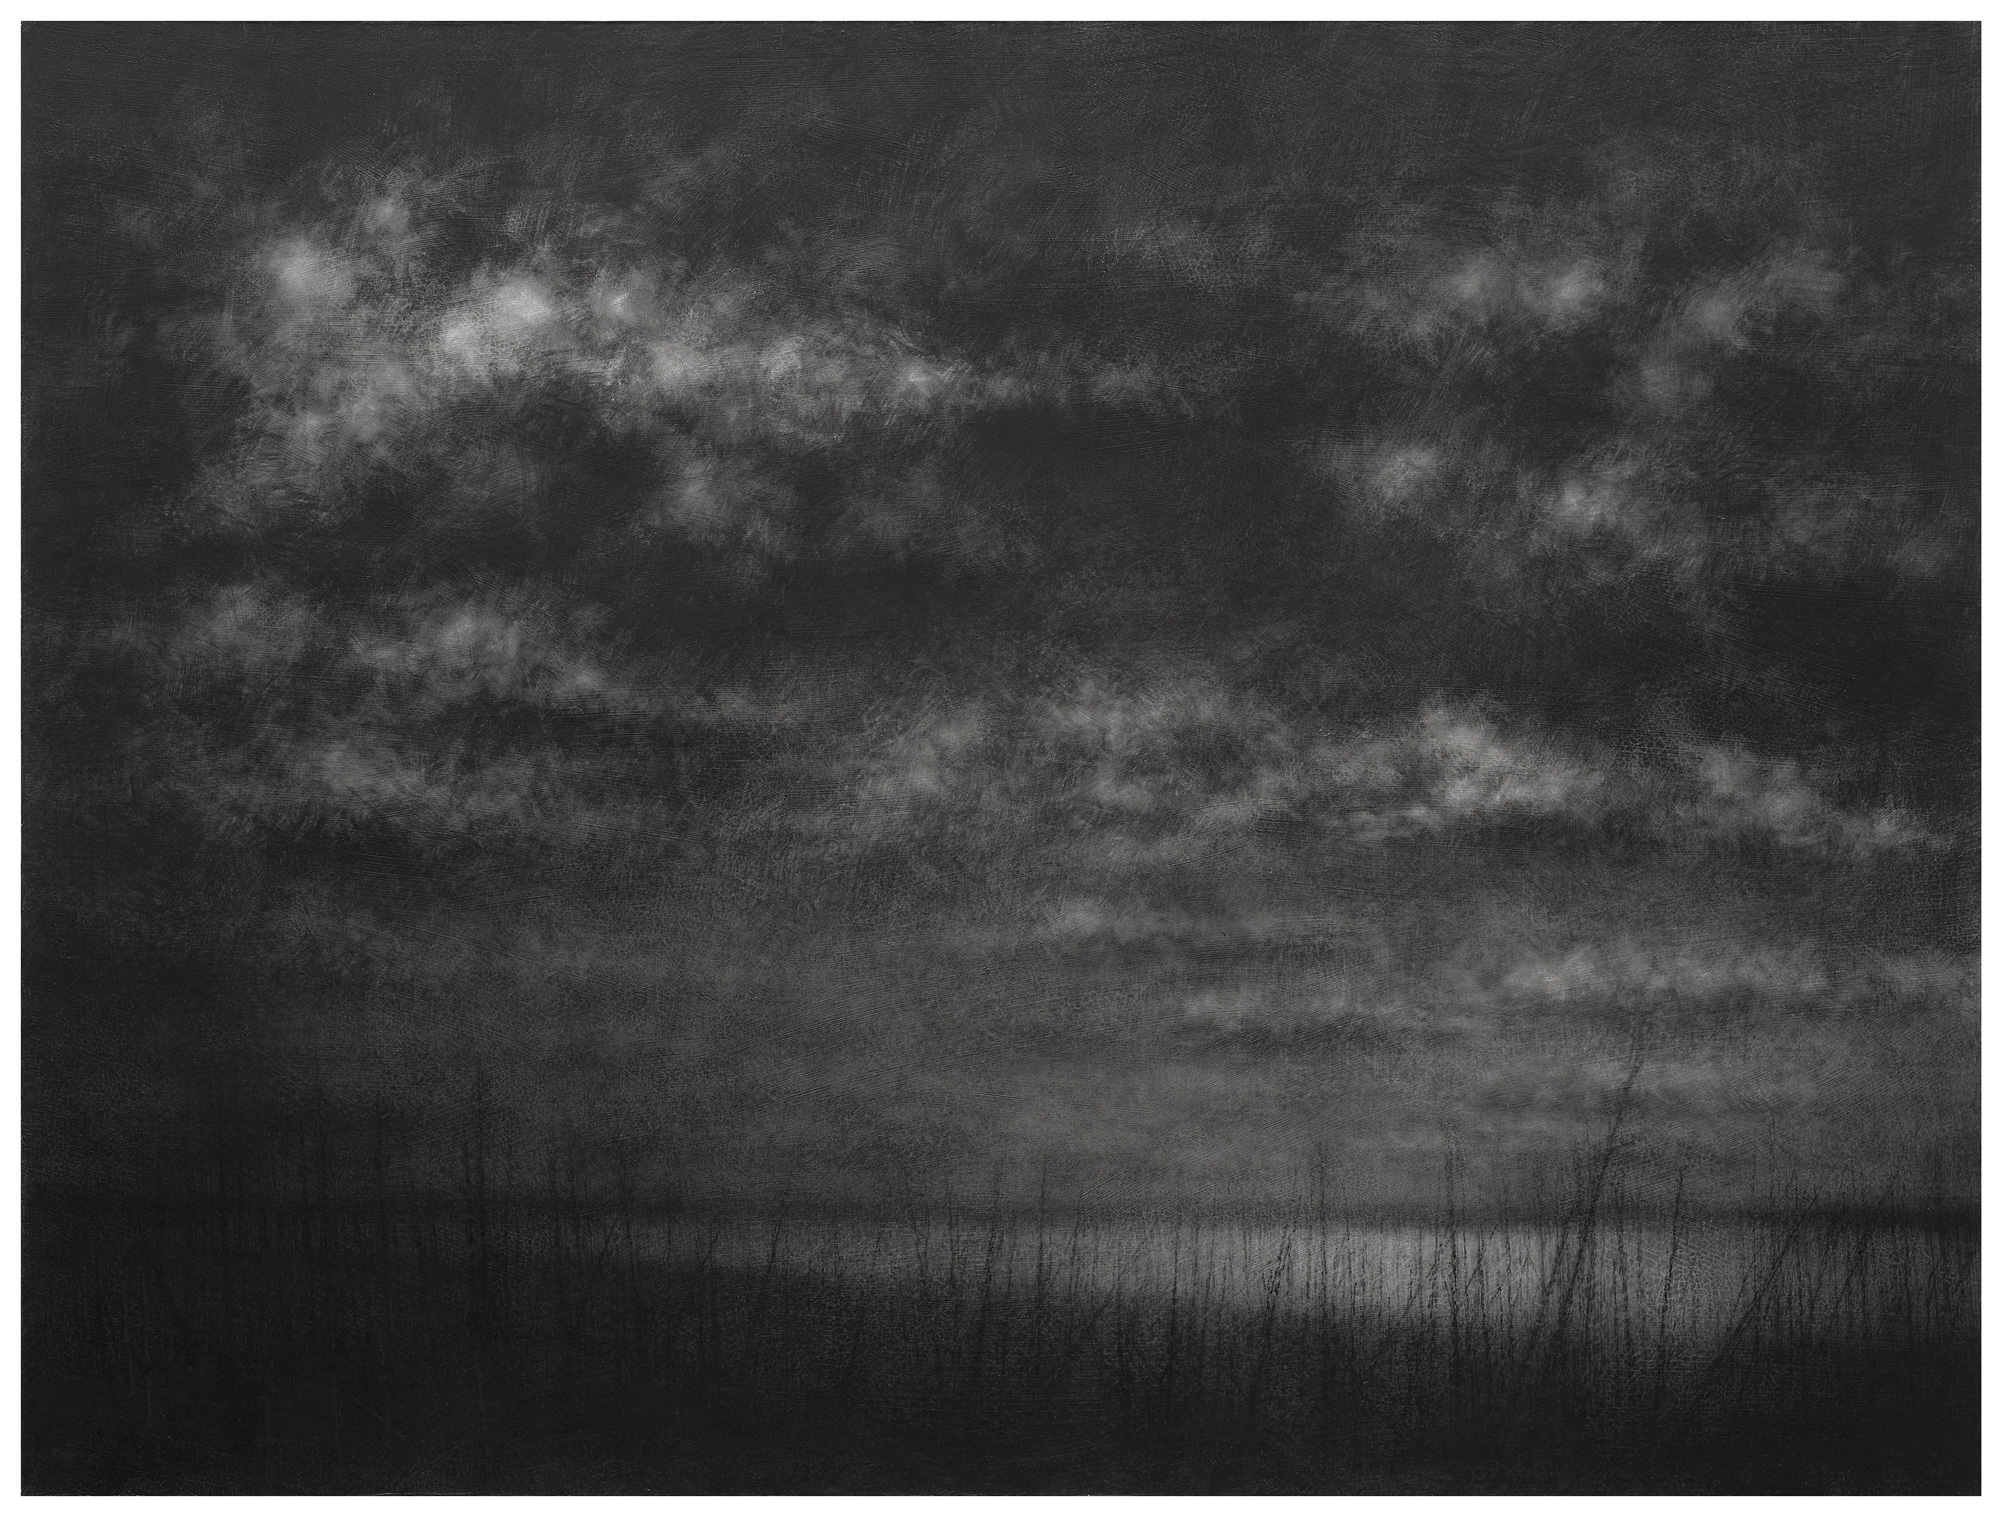 """2013, charcoal on canvas, 150x200 cm.                                                                                                                                                                                                                                                                                                    /* Style Definitions */  table.MsoNormalTable {mso-style-name:""""Обычная таблица""""; mso-tstyle-rowband-size:0; mso-tstyle-colband-size:0; mso-style-noshow:yes; mso-style-priority:99; mso-style-qformat:yes; mso-style-parent:""""""""; mso-padding-alt:0cm 5.4pt 0cm 5.4pt; mso-para-margin-top:0cm; mso-para-margin-right:0cm; mso-para-margin-bottom:10.0pt; mso-para-margin-left:0cm; line-height:115%; mso-pagination:widow-orphan; font-size:11.0pt; font-family:""""Calibri"""",""""sans-serif""""; mso-ascii-font-family:Calibri; mso-ascii-theme-font:minor-latin; mso-hansi-font-family:Calibri; mso-hansi-theme-font:minor-latin; mso-bidi-font-family:""""Times New Roman""""; mso-bidi-theme-font:minor-bidi;}                                                                                                                                                                                                                                                                                                          /* Style Definitions */  table.MsoNormalTable {mso-style-name:""""Обычная таблица""""; mso-tstyle-rowband-size:0; mso-tstyle-colband-size:0; mso-style-noshow:yes; mso-style-priority:99; mso-style-qformat:yes; mso-style-parent:""""""""; mso-padding-alt:0cm 5.4pt 0cm 5.4pt; mso-para-margin-top:0cm; mso-para-margin-right:0cm; mso-para-margin-bottom:10.0pt; mso-para-margin-left:0cm; line-height:115%; mso-pagination:widow-orphan; font-size:11.0pt; font-family:""""Calibri"""",""""sans-serif""""; mso-ascii-font-family:Calibri; mso-ascii-theme-font:minor-latin; mso-hansi-font-family:Calibri; mso-hansi-theme-font:minor-latin; mso-bidi-font-family:""""Times New Roman""""; mso-bidi-theme-font:minor-bidi;}"""